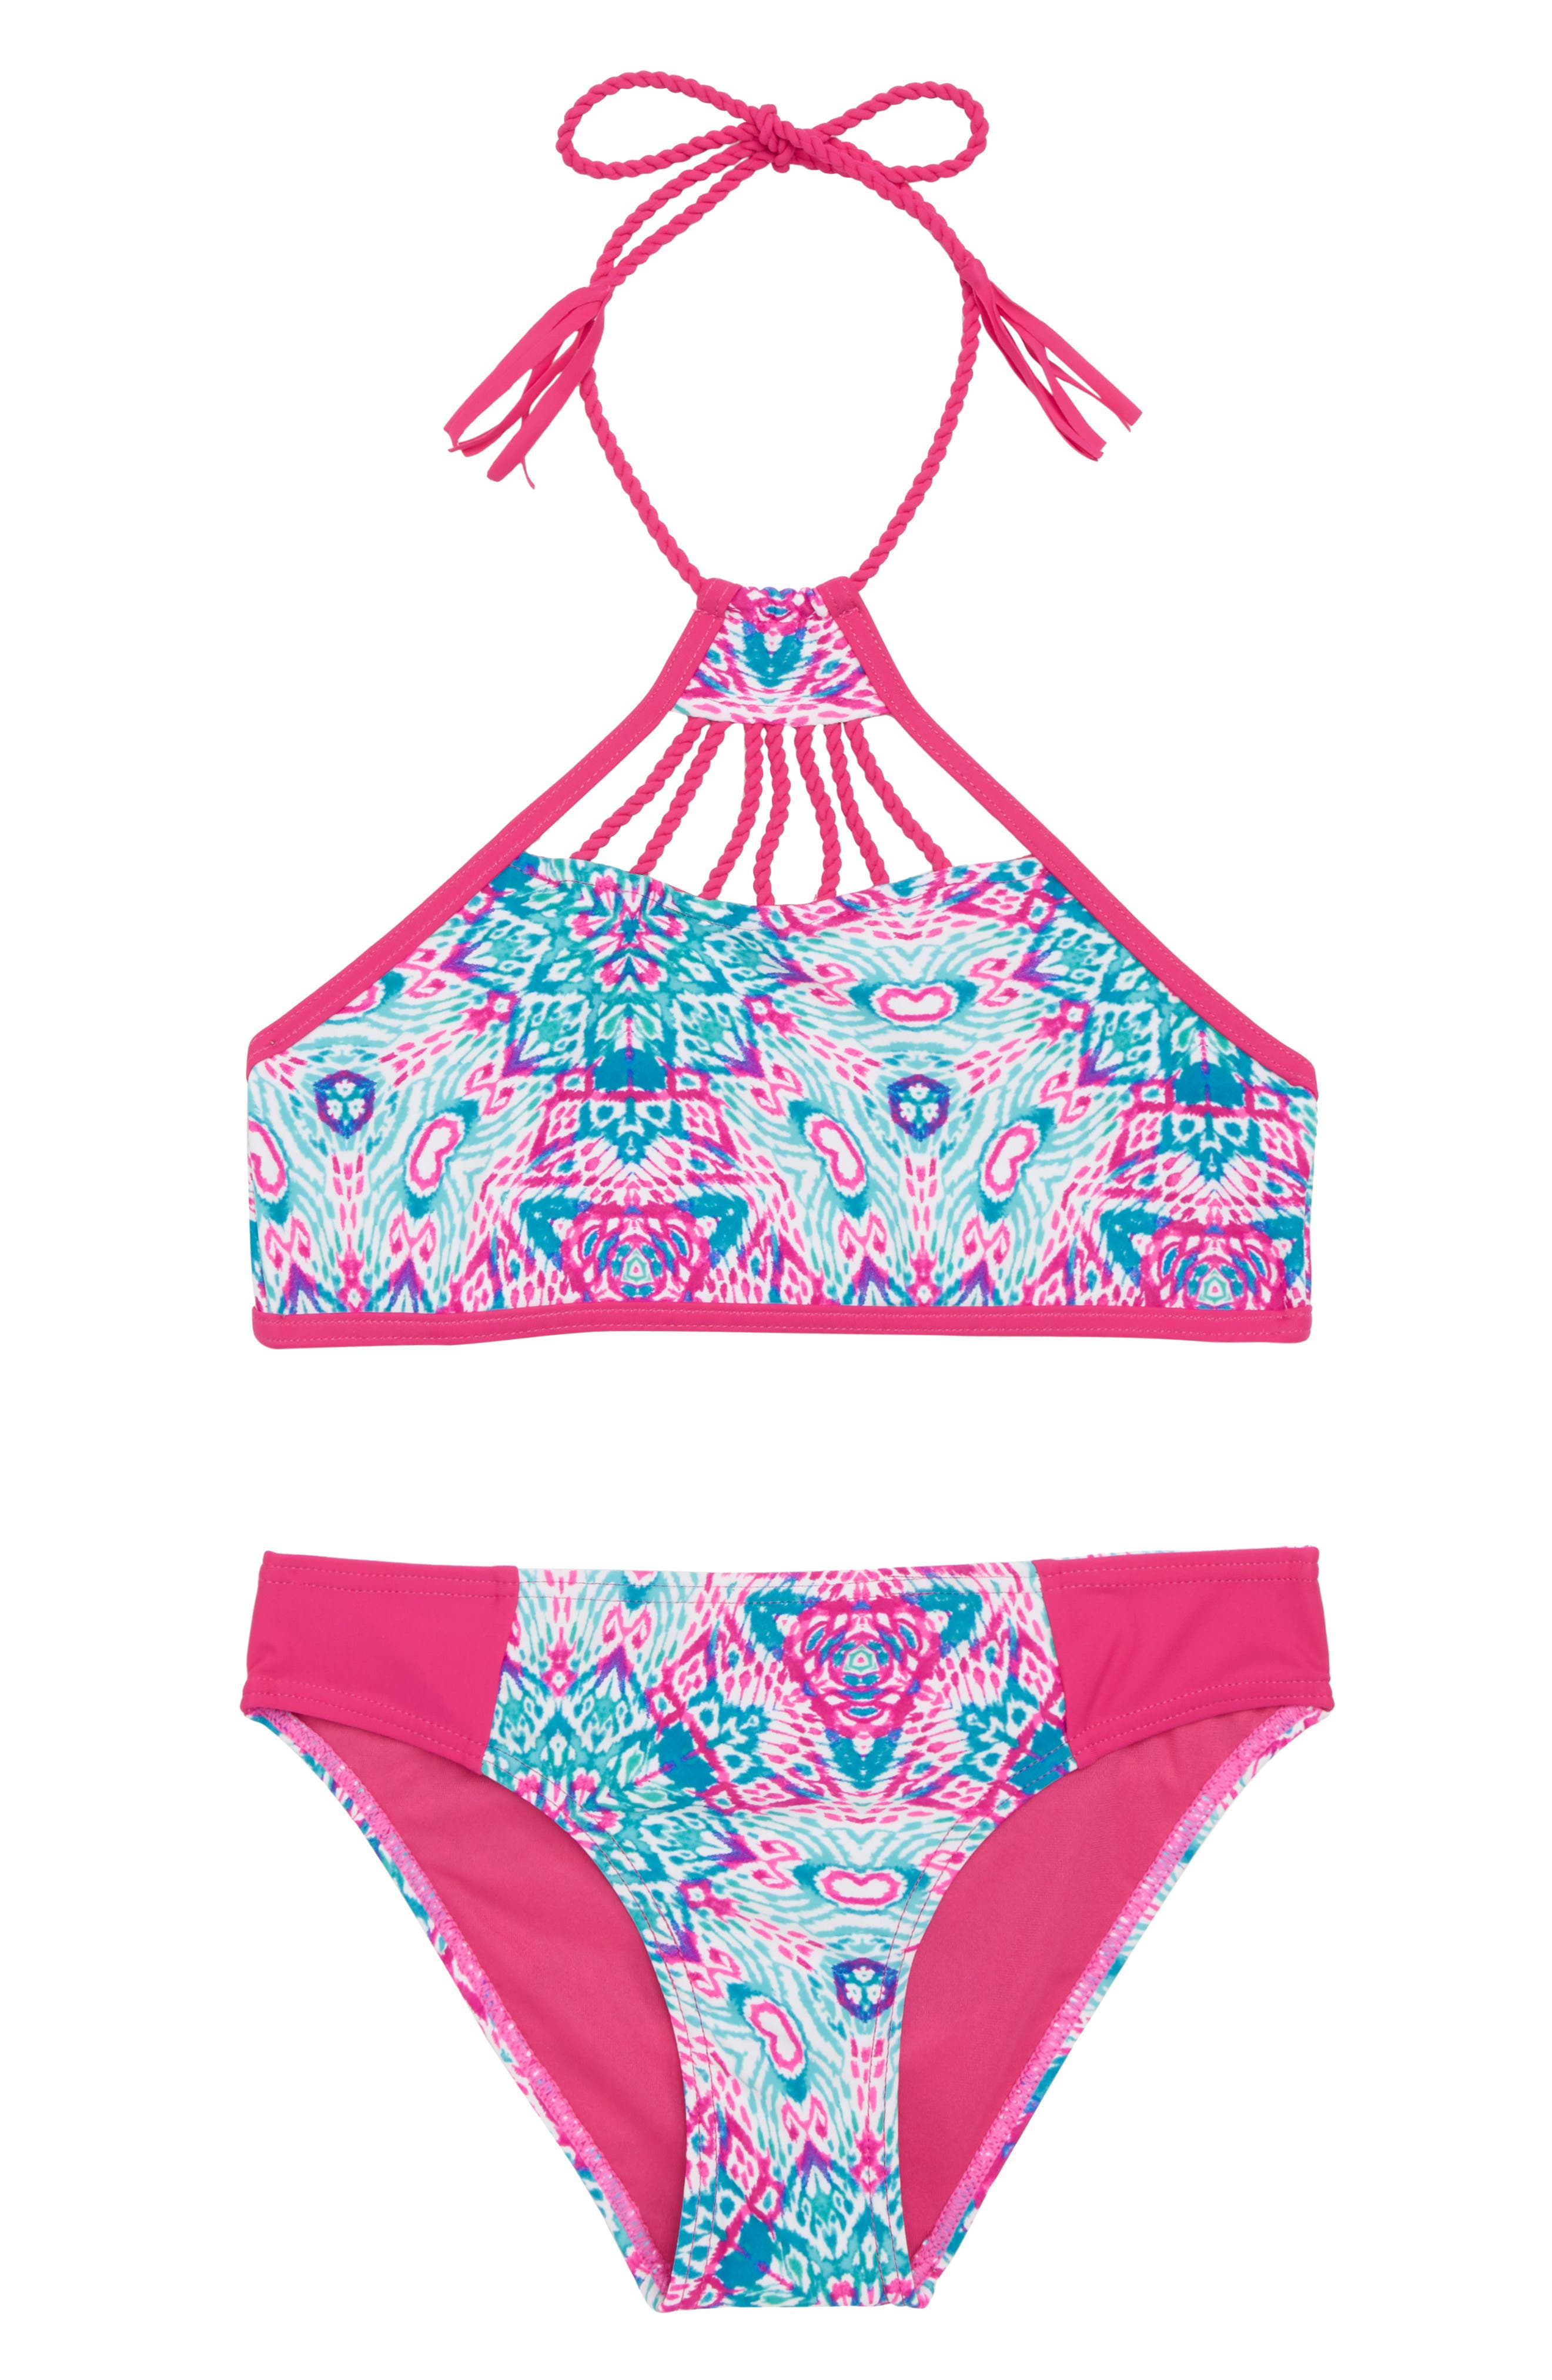 Braided Detail Two-Piece Swimsuit,                             Main thumbnail 1, color,                             Pink